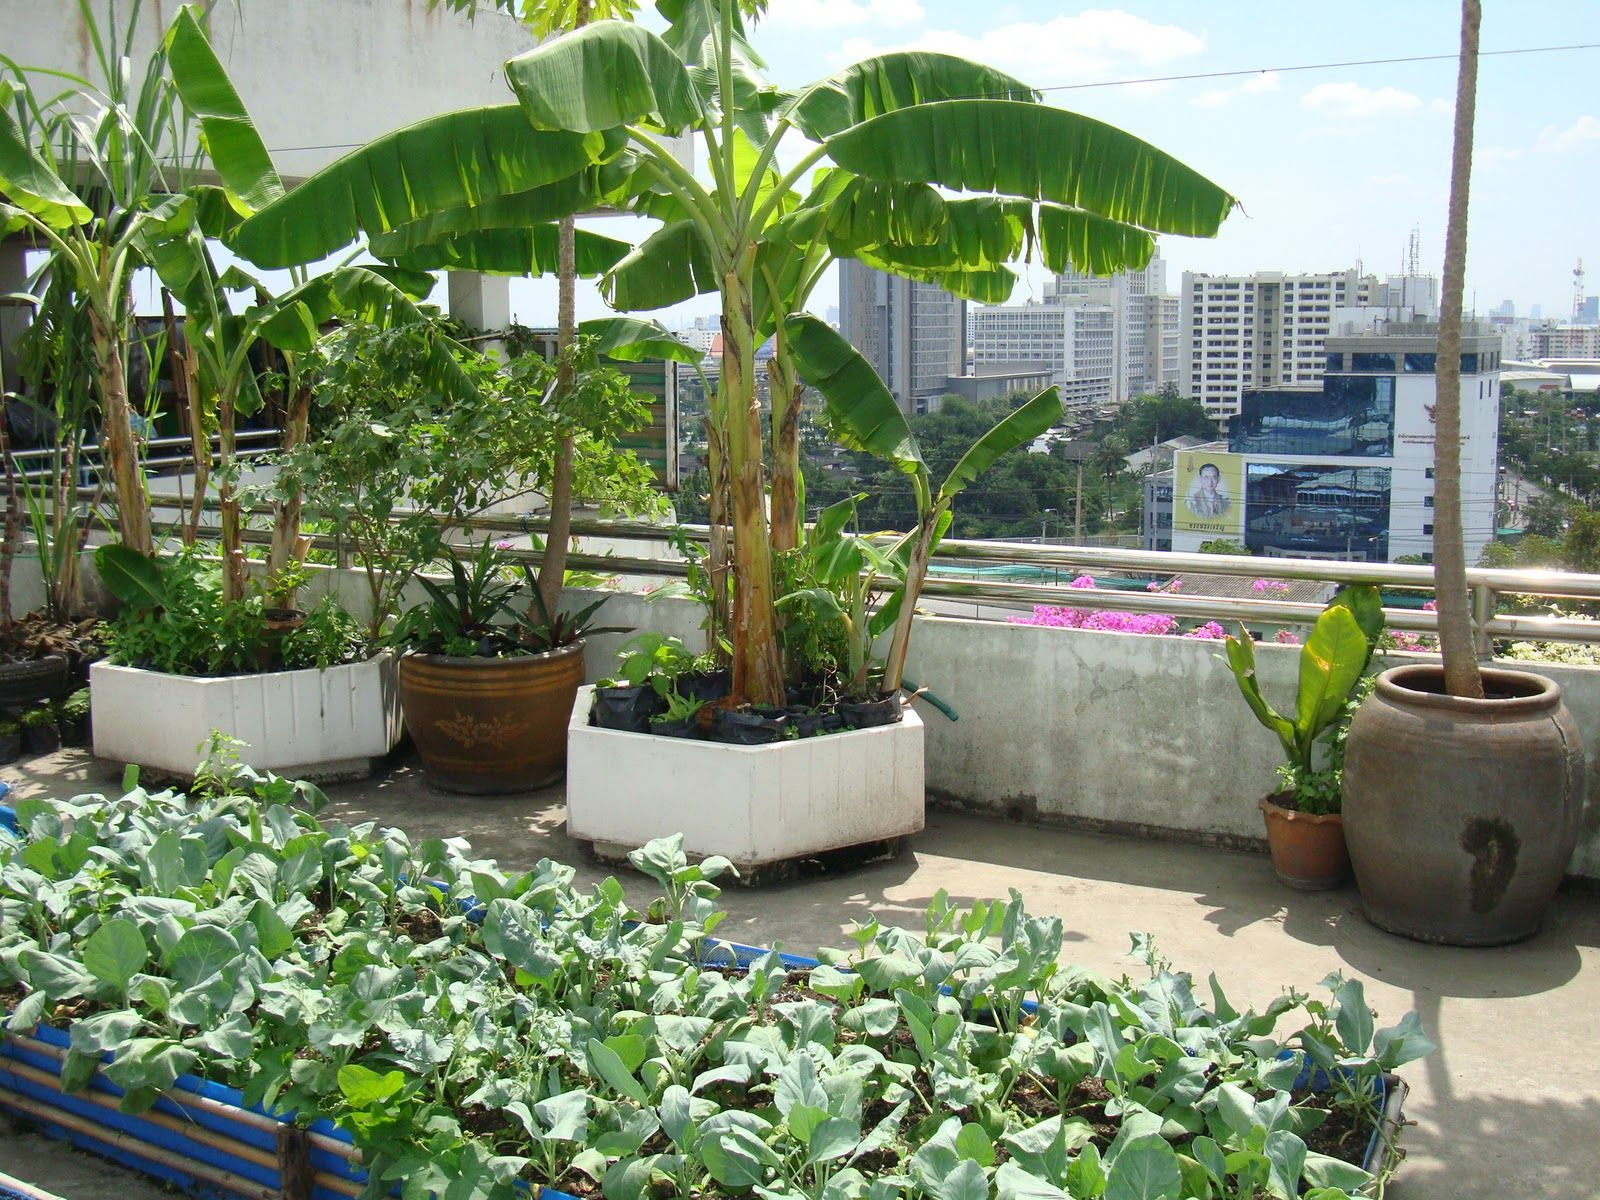 Rooftop garden creative landscape garden serenity for Terrace kitchen garden ideas